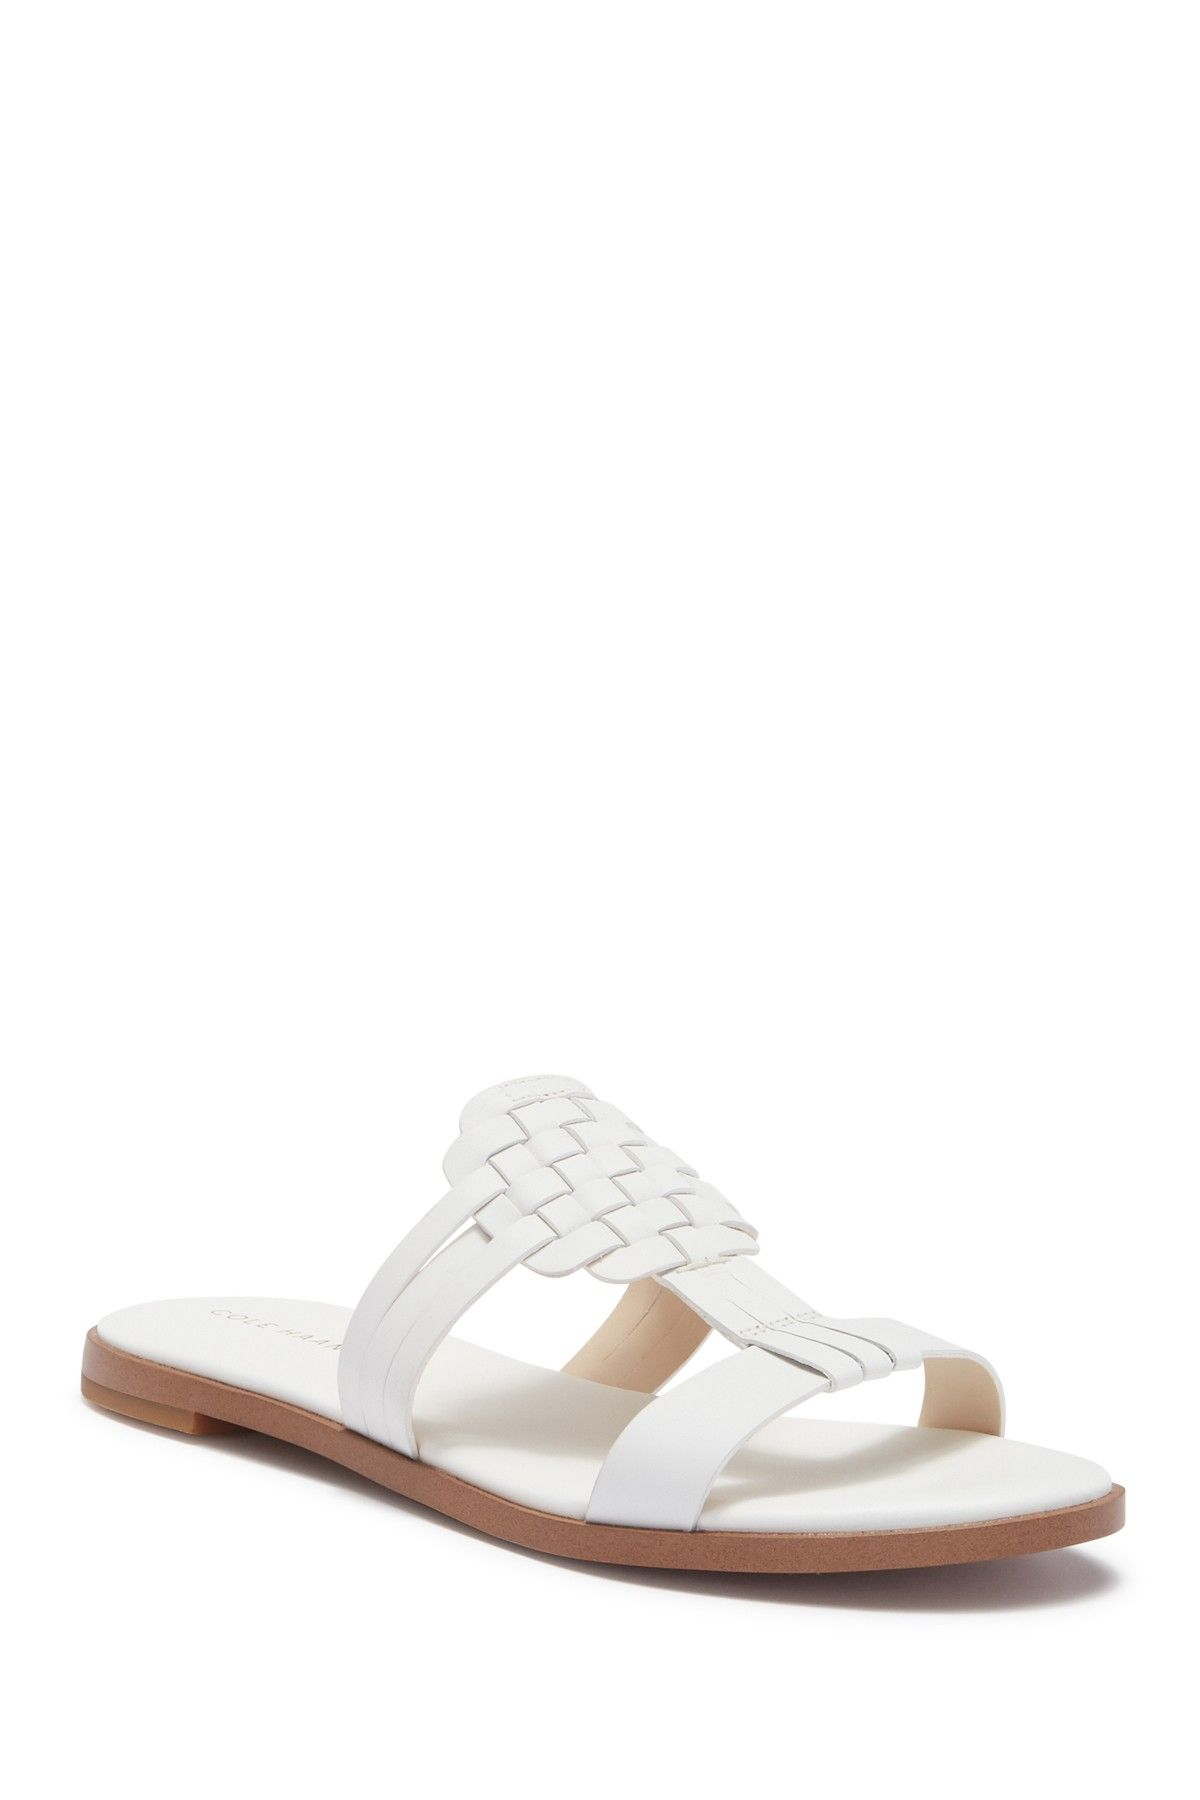 cdaa3a1a8848 Findra Woven Leather Sandal by Cole Haan on  nordstrom rack